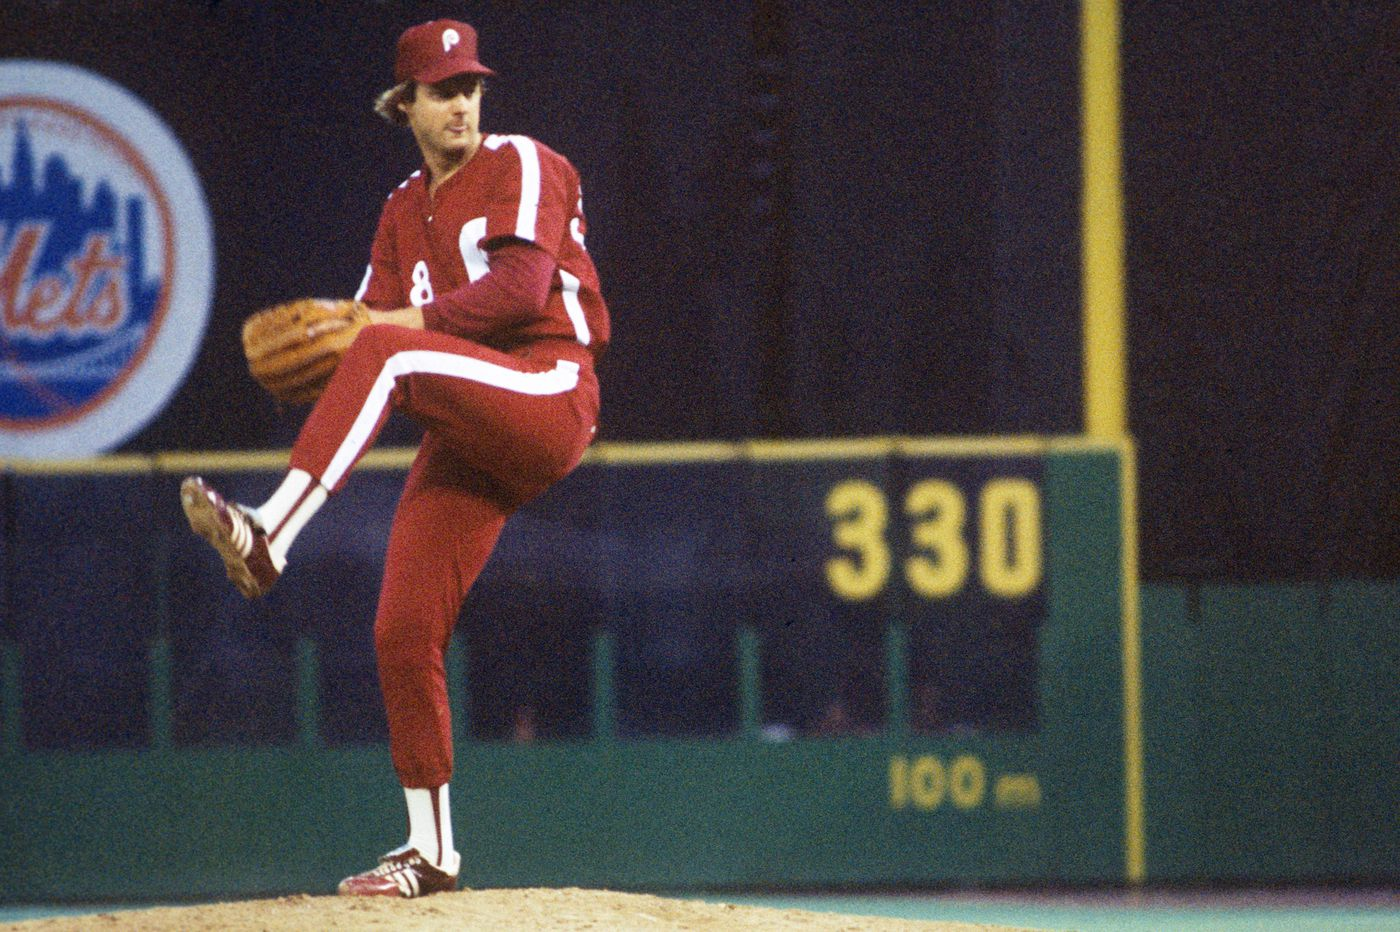 This weekend, the Phillies are bringing back the burgundy uniforms that were so ugly the players trashed them